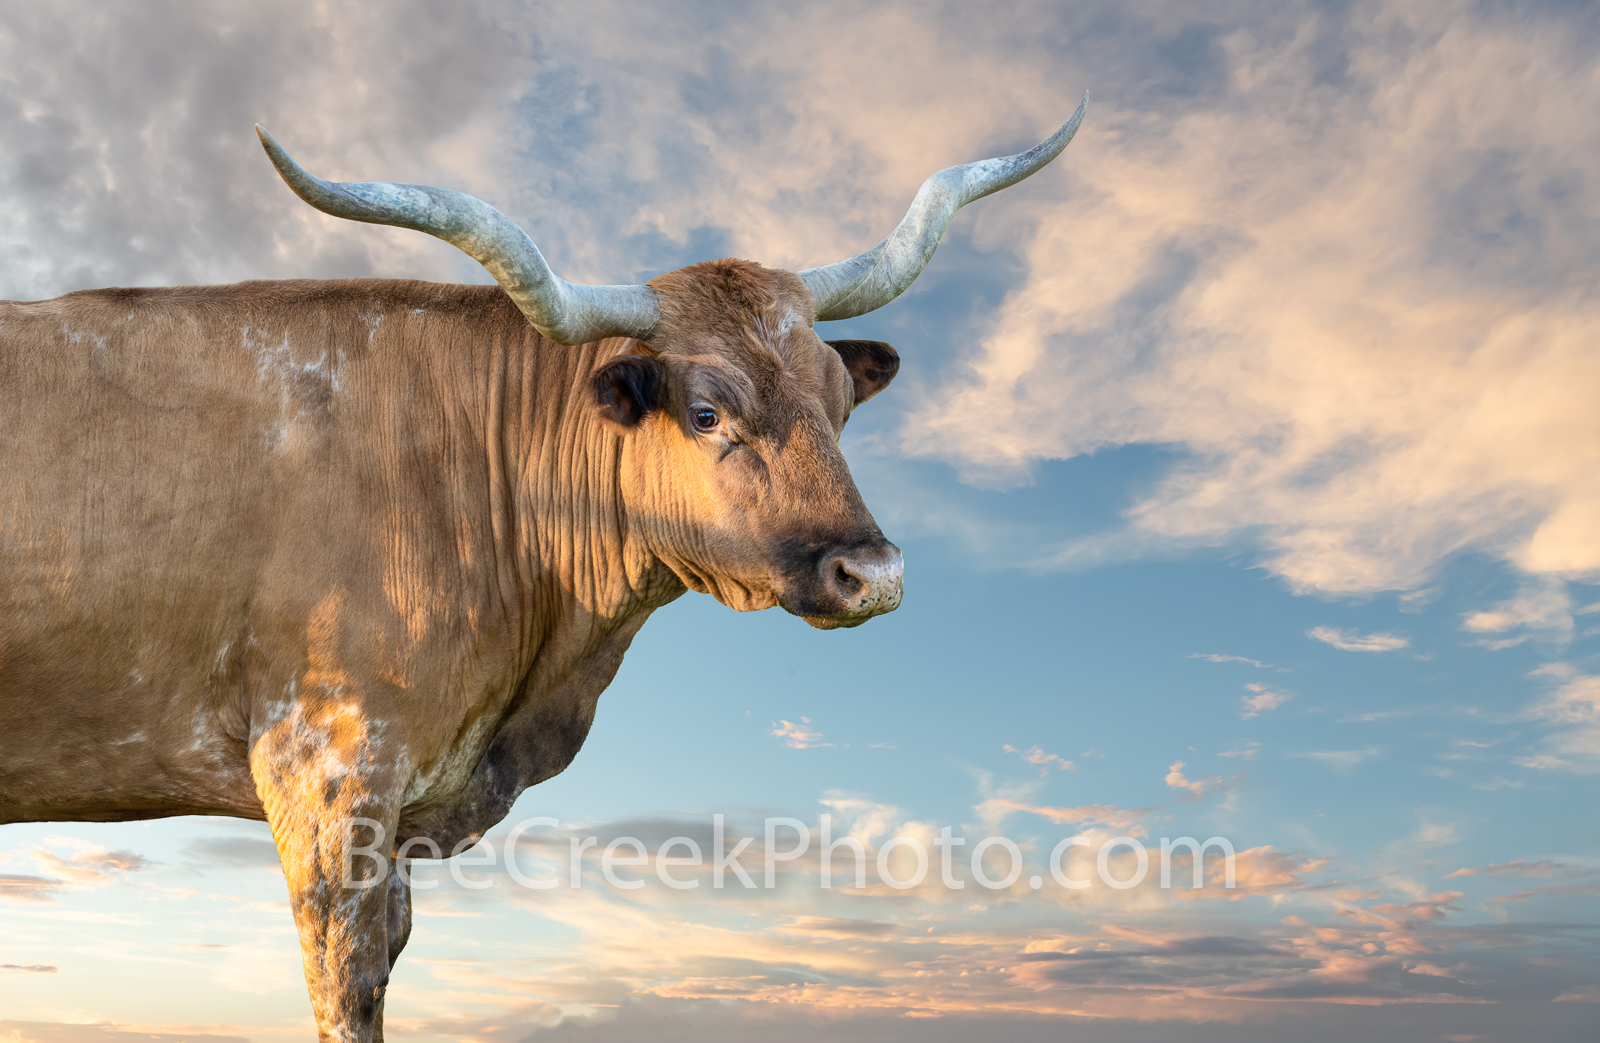 The Texas Longhorn - This longhorn  was out in the Texas hill country on a elevated piece of the property so were able to capture...